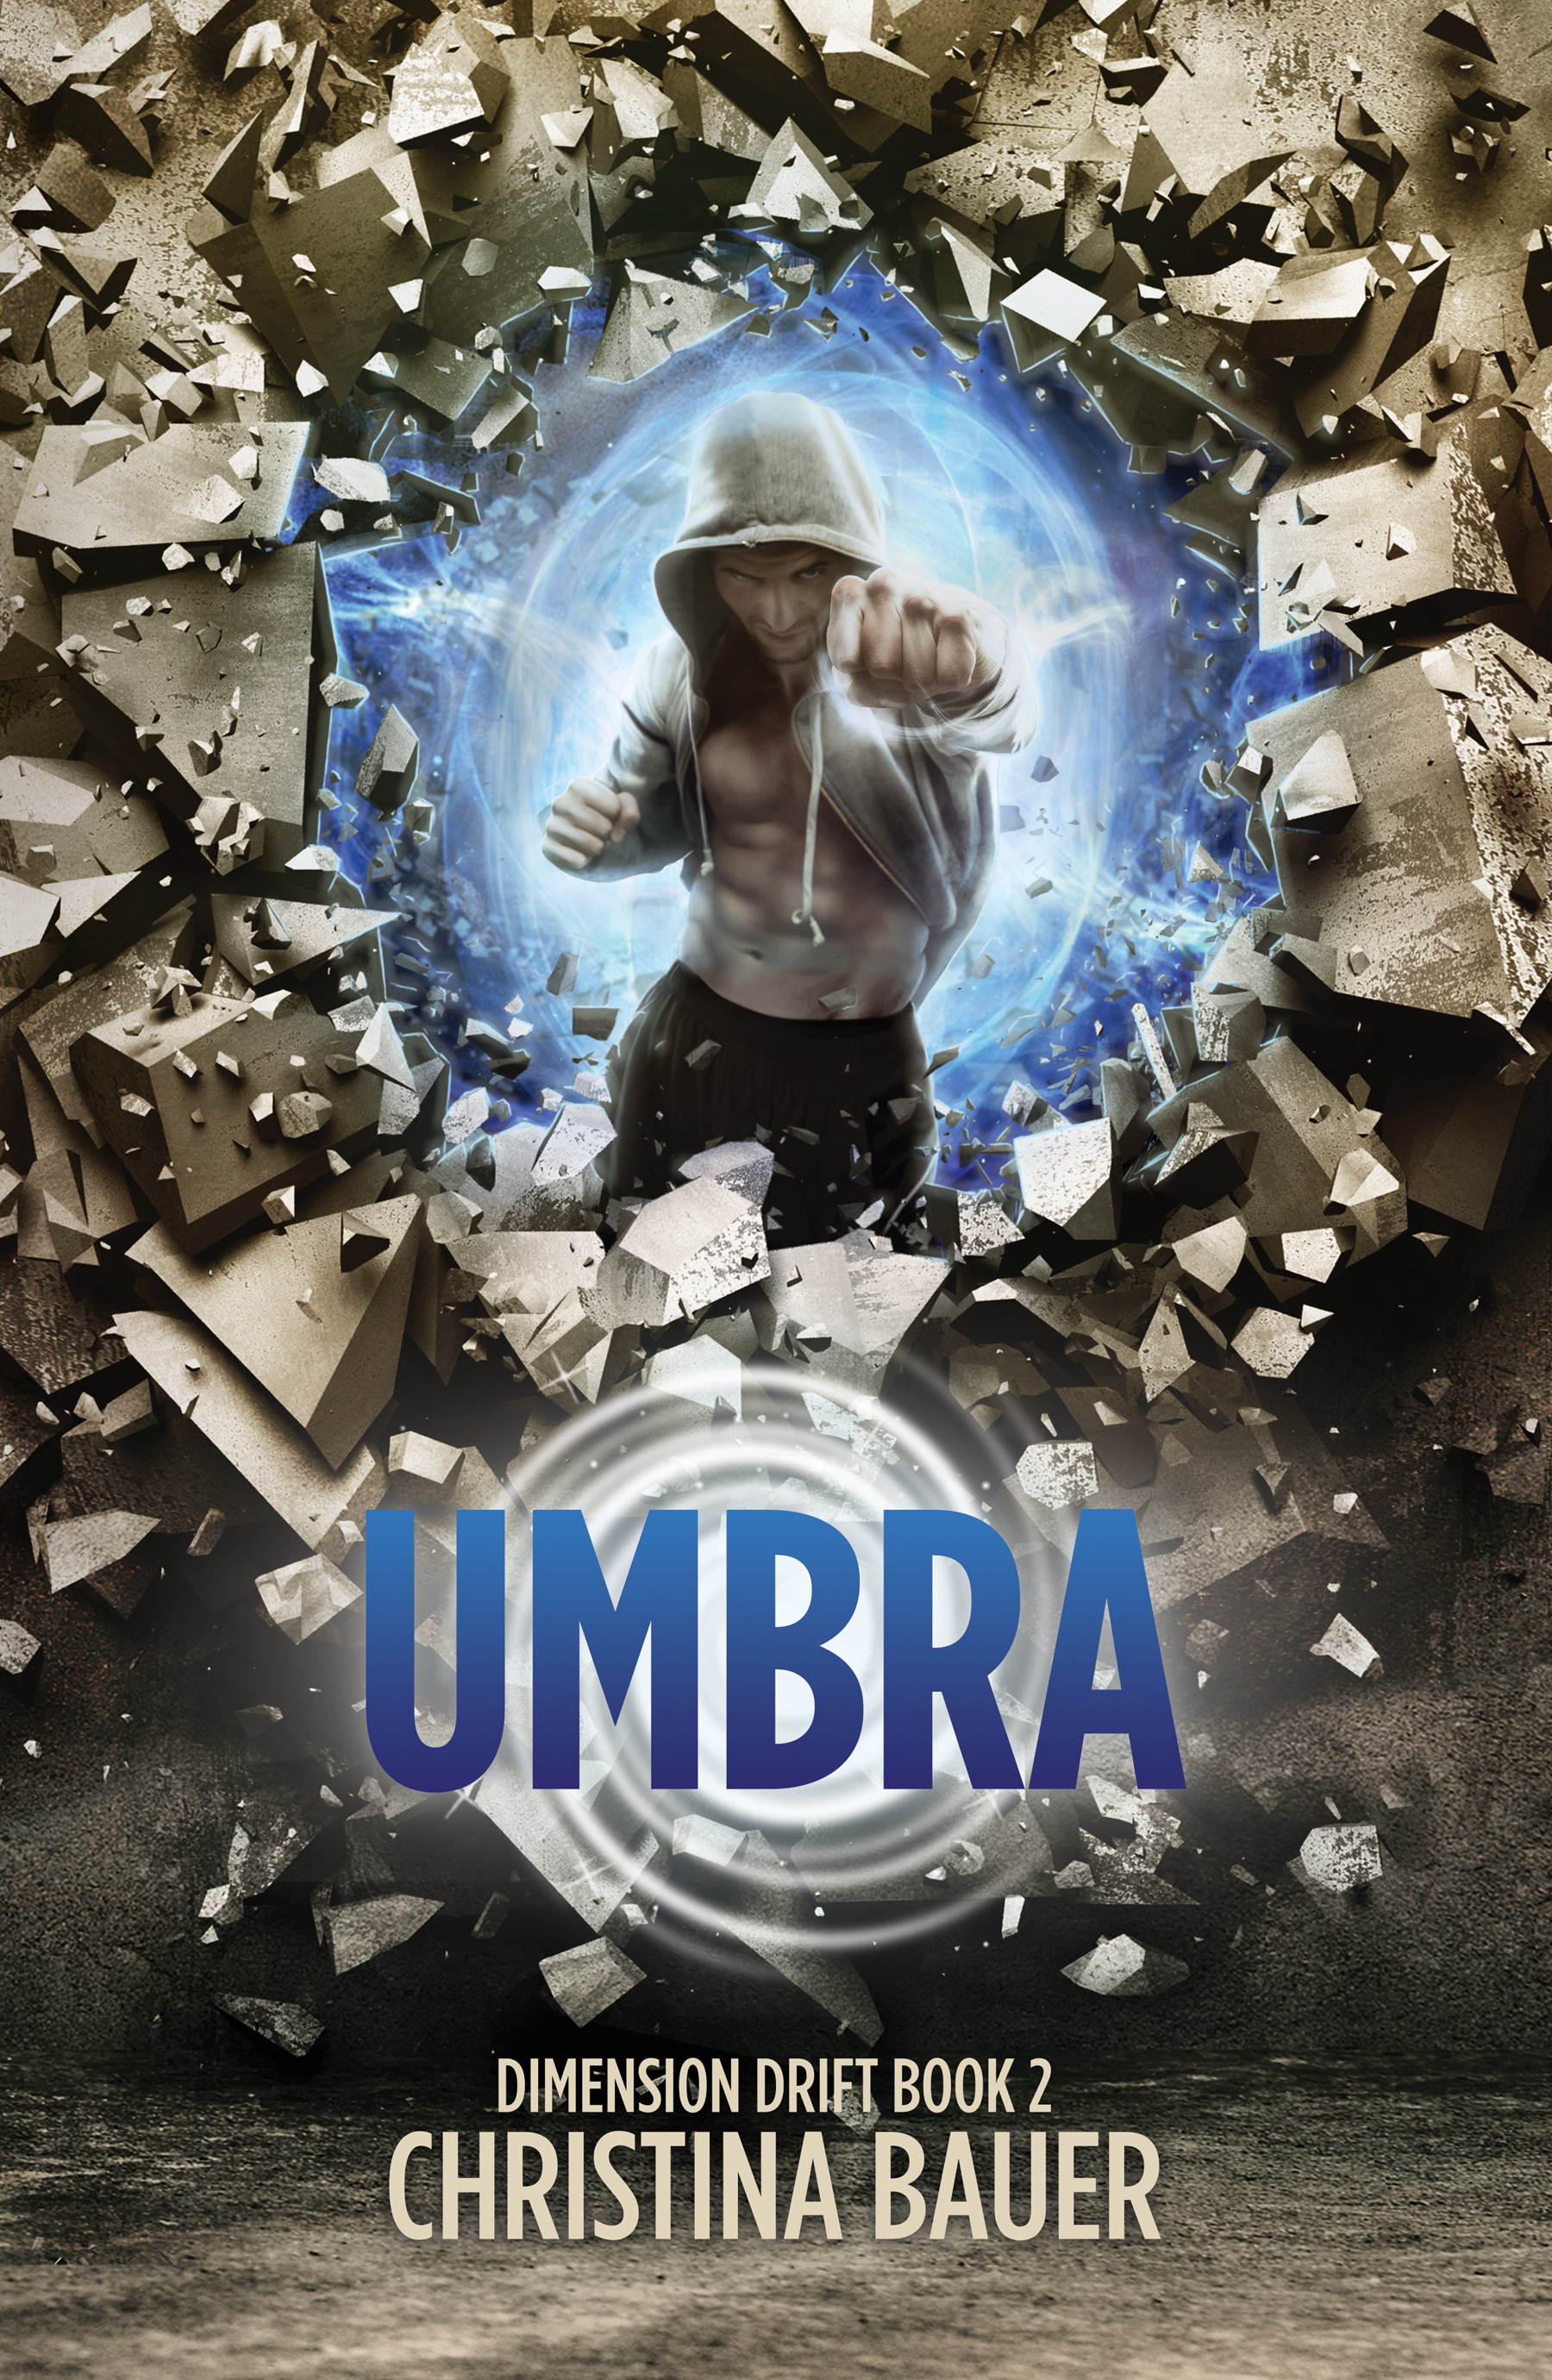 Umbra - Dimension Drift 2